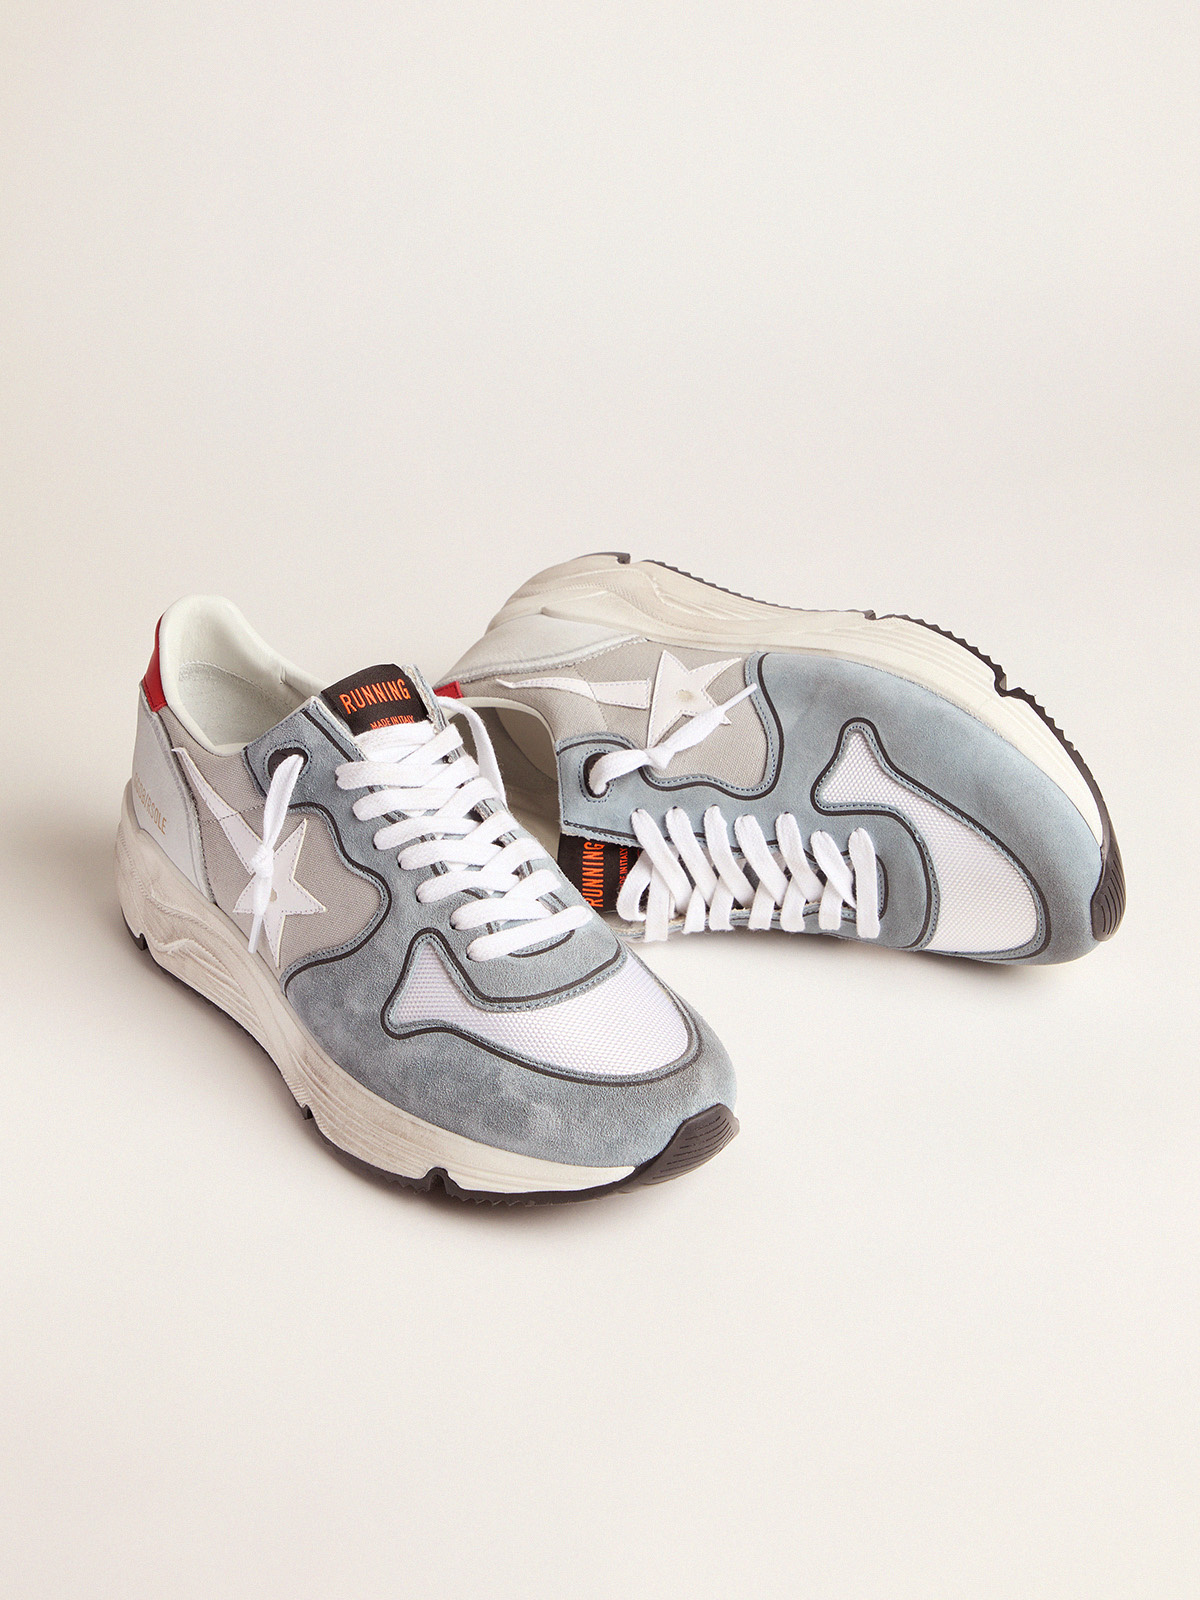 Golden Goose - Grey Running Sole sneakers in suede and canvas in